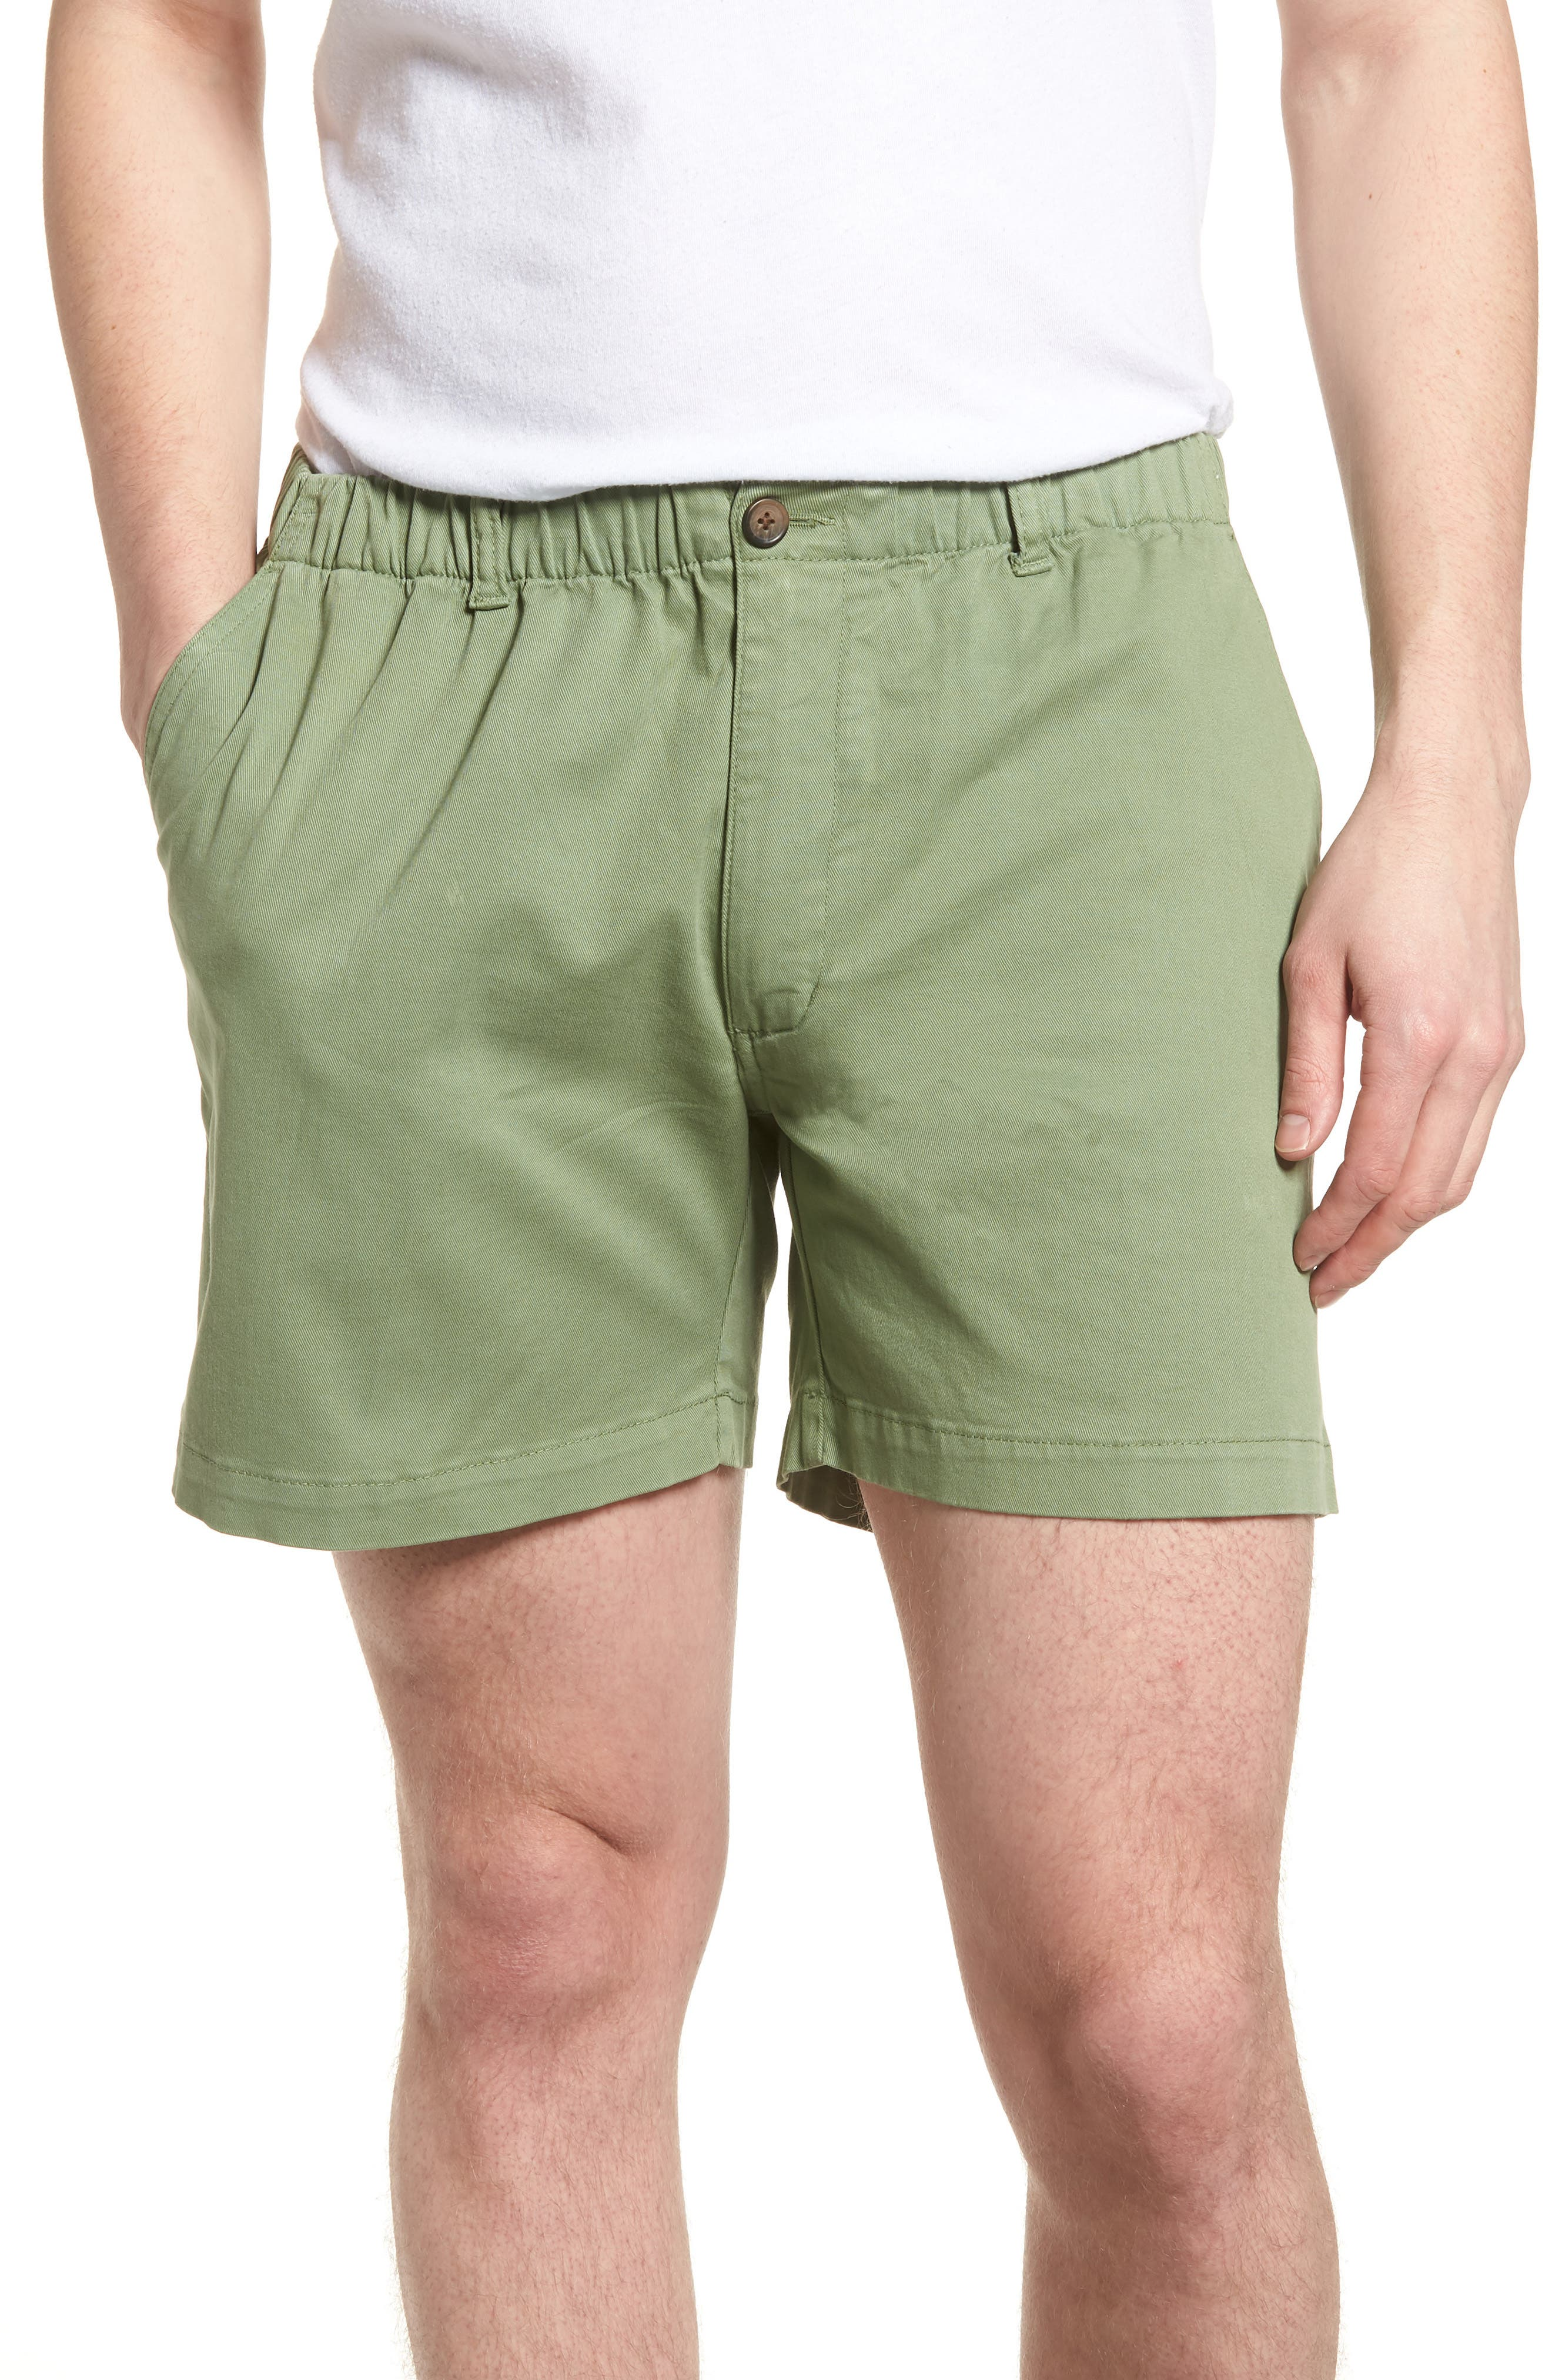 Snappers Elastic Waist 5.5 Inch Stretch Shorts,                             Main thumbnail 1, color,                             HEDGE